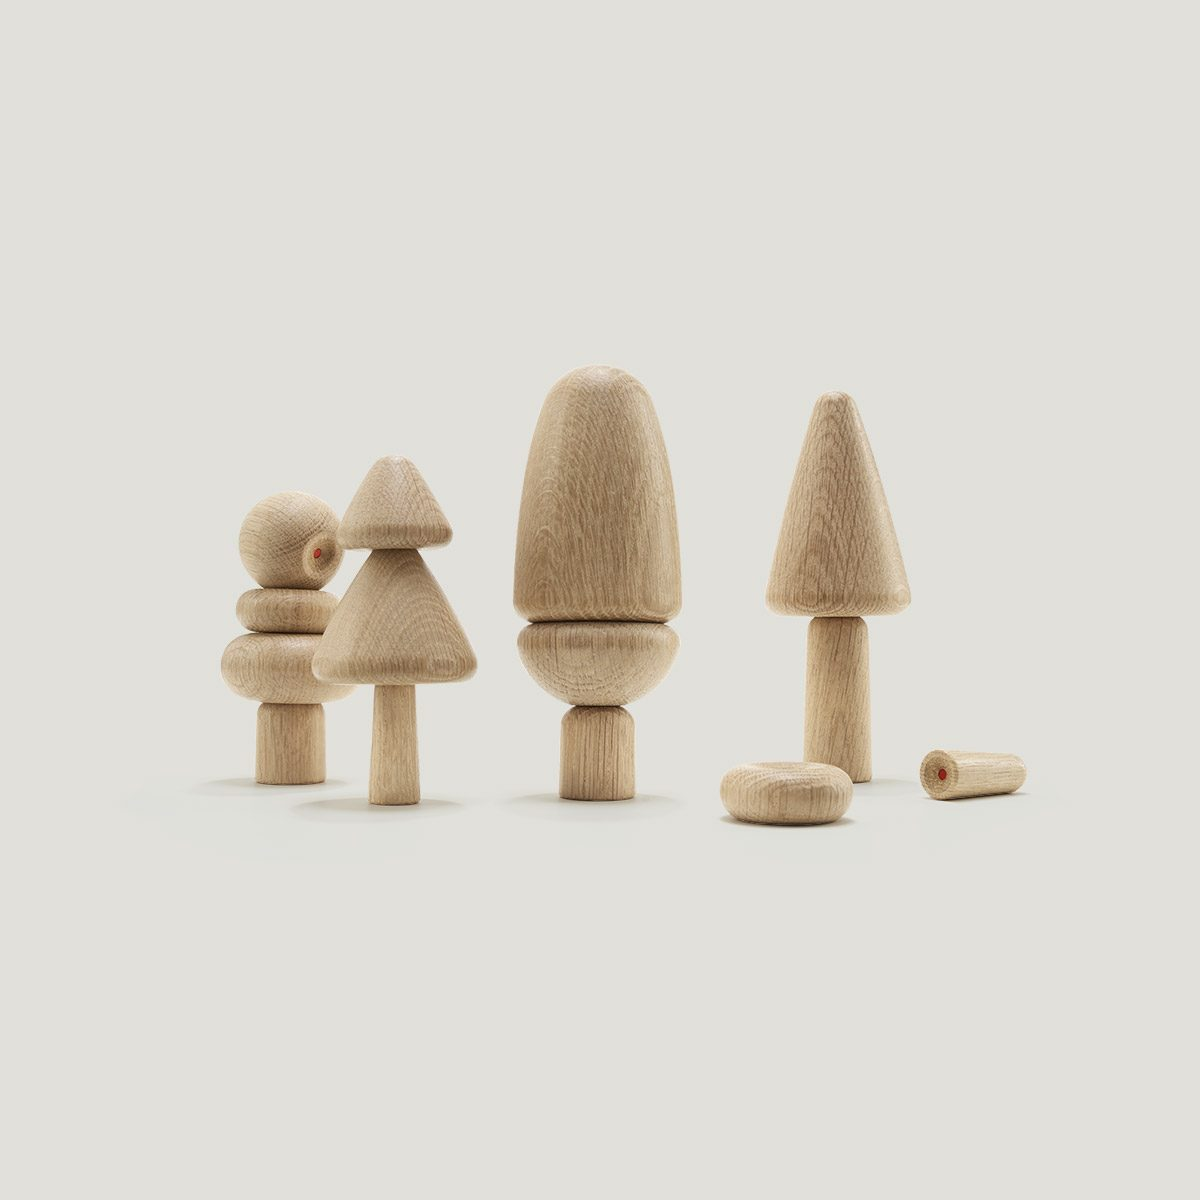 TRE special edition wooden toy